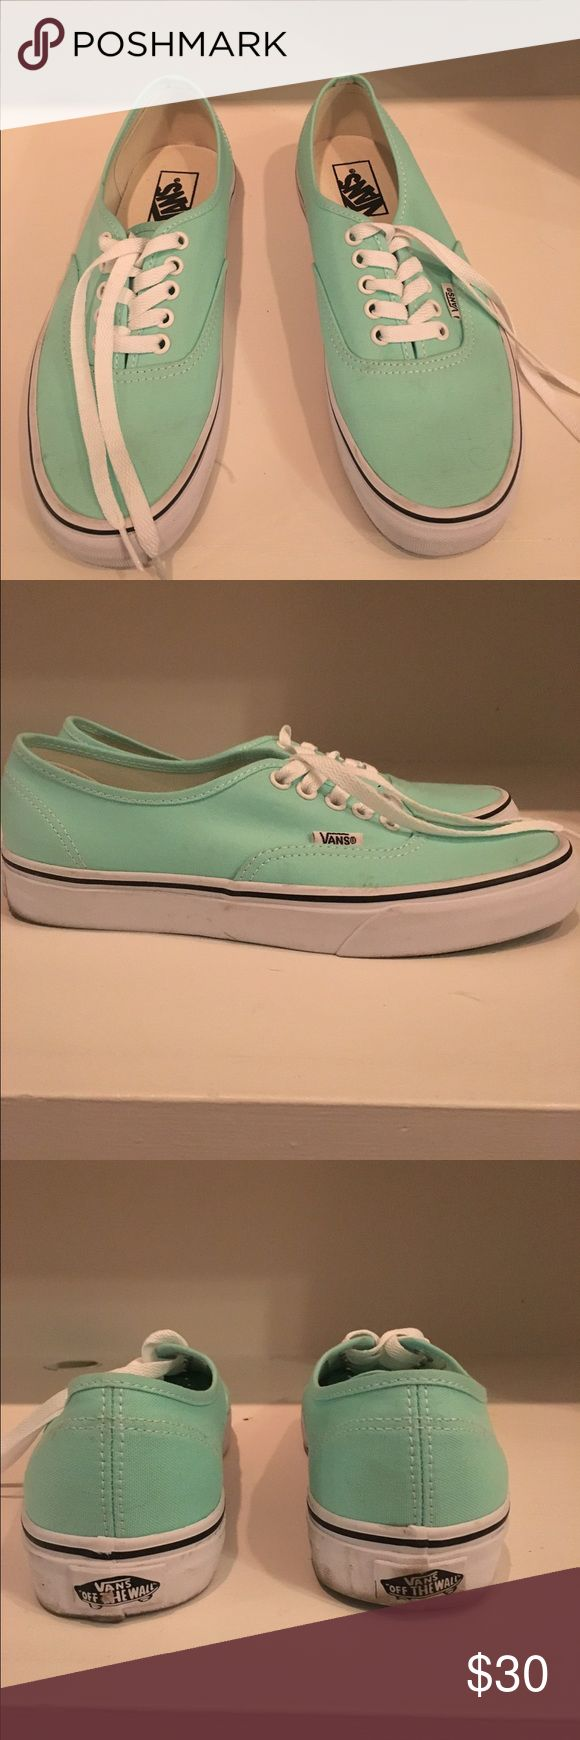 Mint green vans Super cute mint green vans. Got them for Christmas but I already had similar shoes. Very comfy and go with everything and are in great condition! Vans Shoes Sneakers